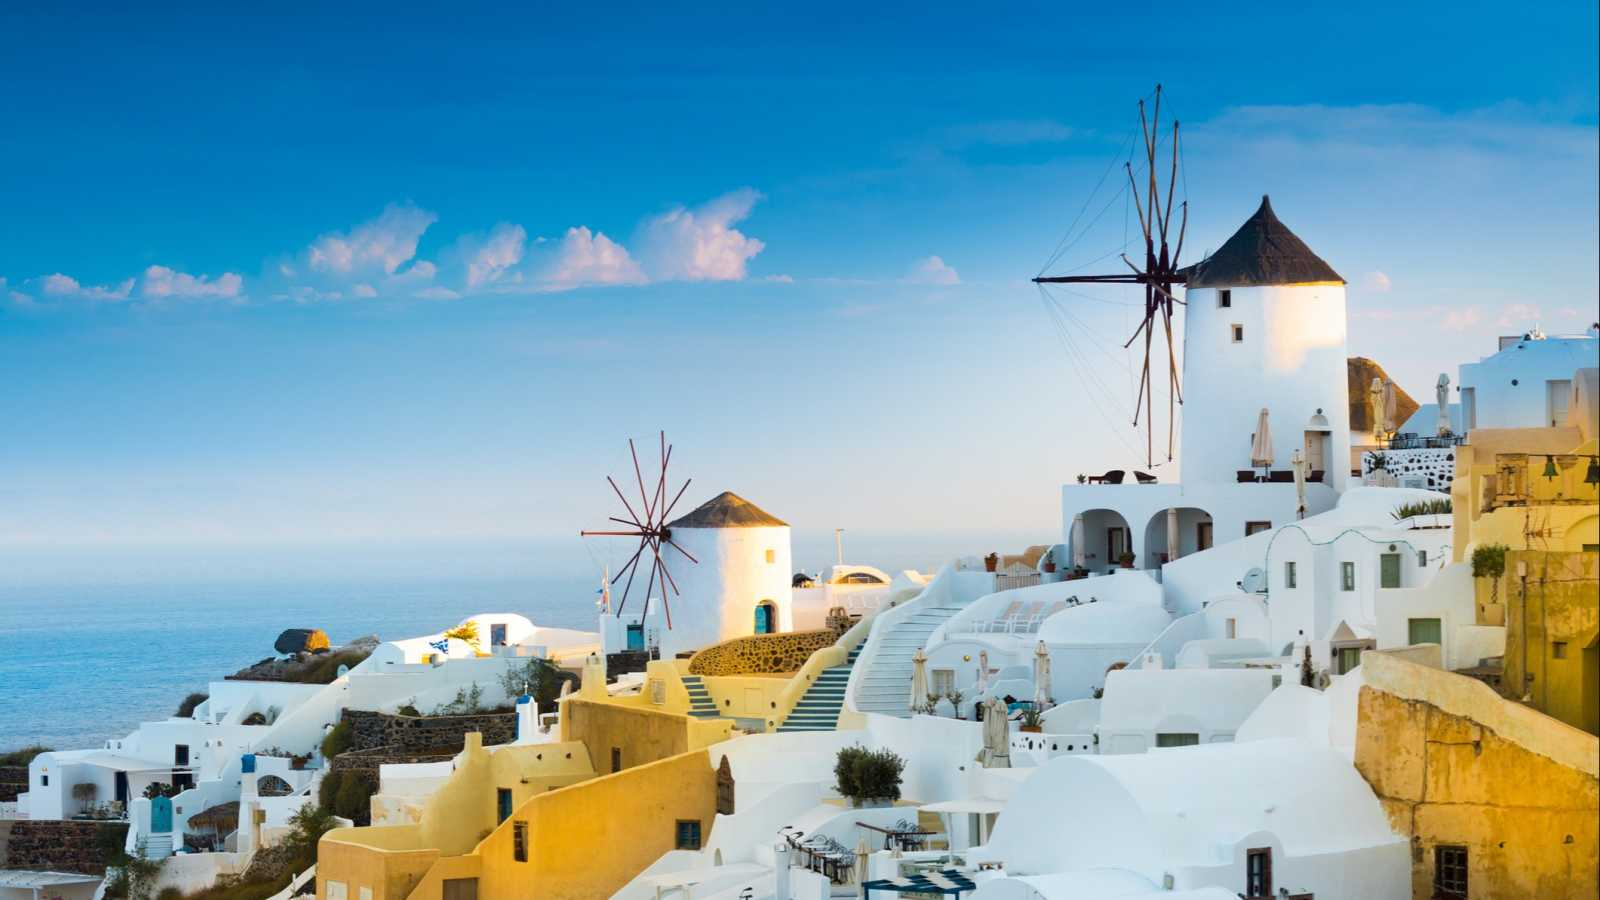 View of Oia the most beautiful village of Santorini island in Greece